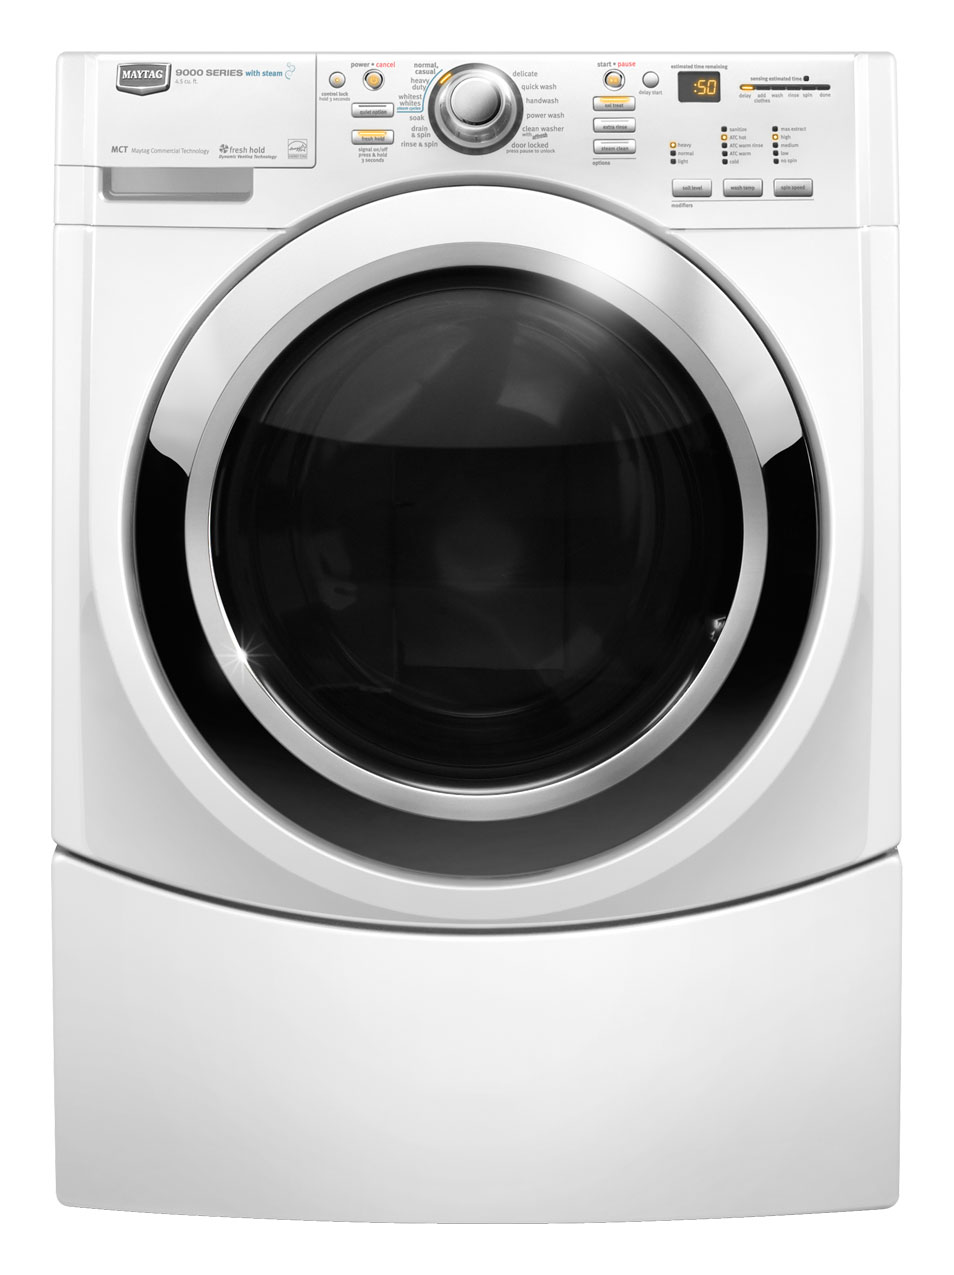 Maytag Performance 3.9 cu ft High-Efficiency Front-Load Washers (White) ENERGY STAR (Model #: MHWE950WW) - Reviews of Top 11 Top Load Washers